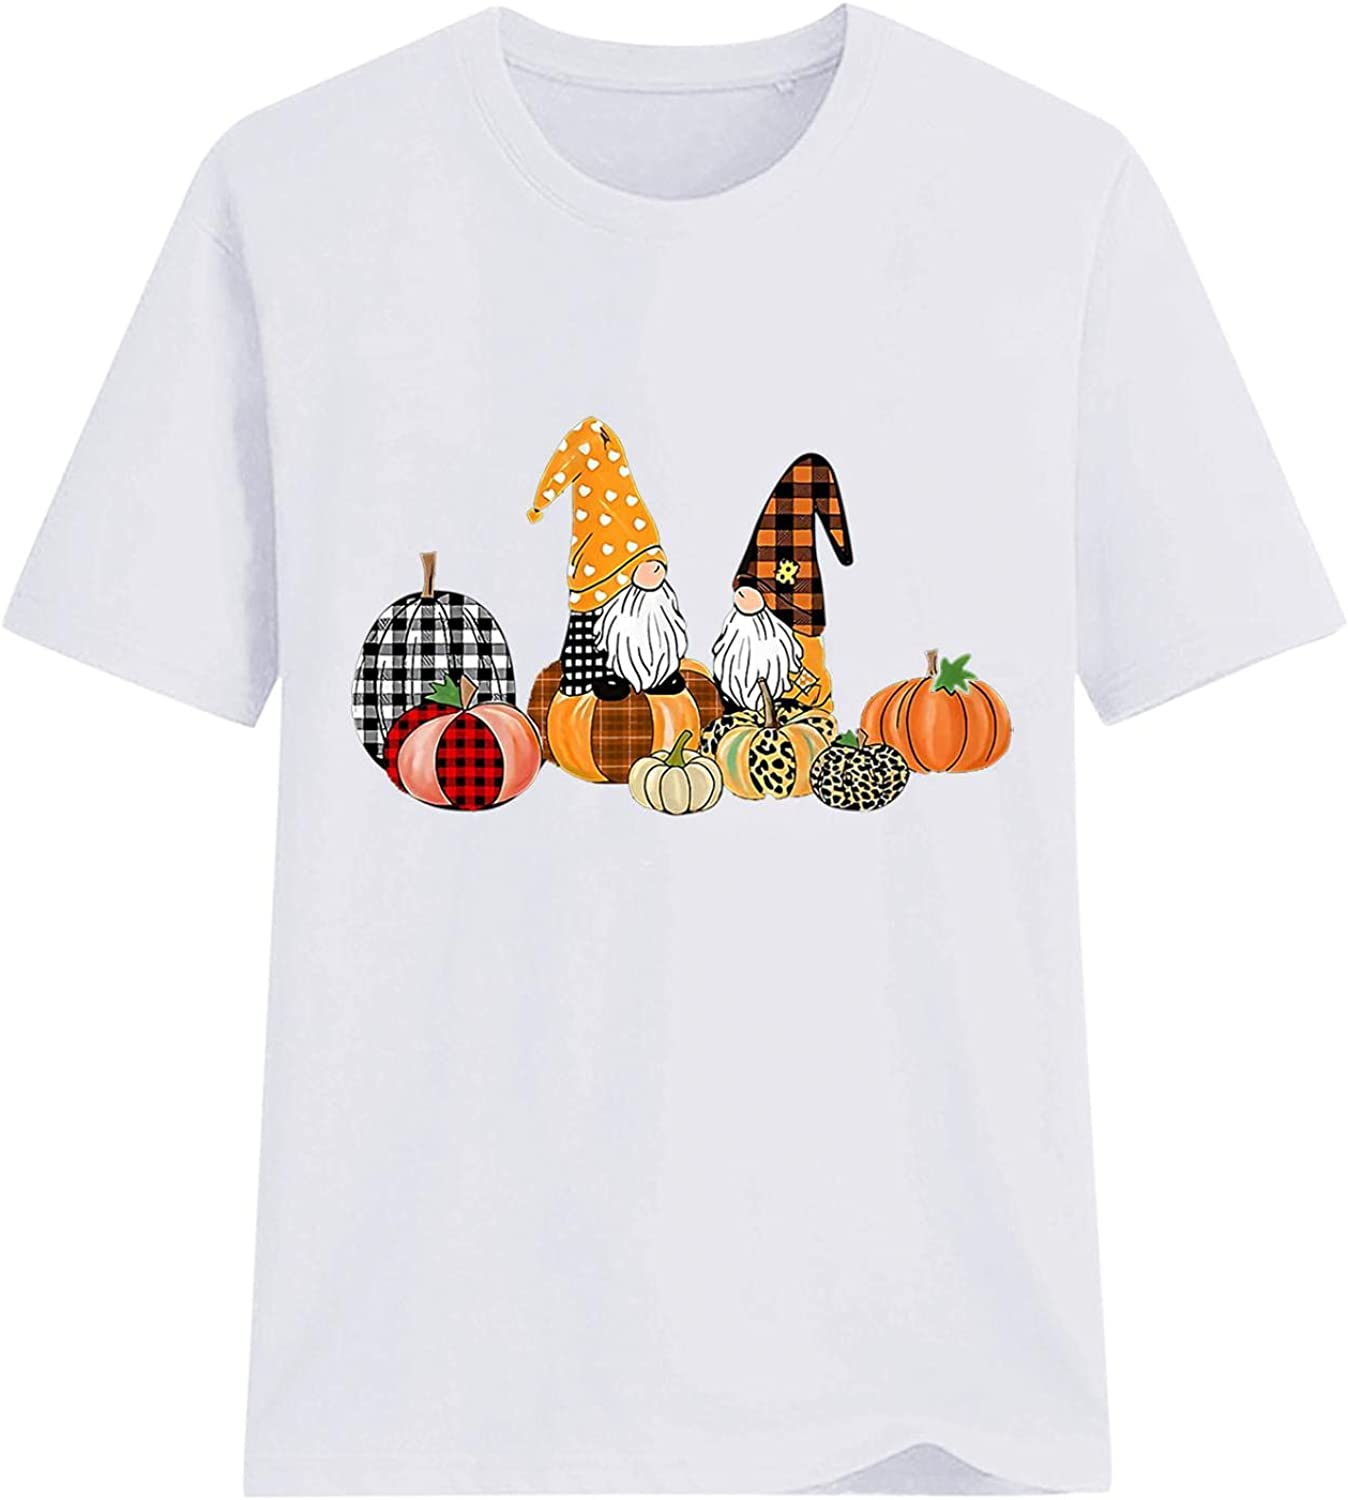 AODONG Womens Tops for Halloween Short Sleeves Pumpkin Gnomes Graphic T-Shirts Blouse Tops